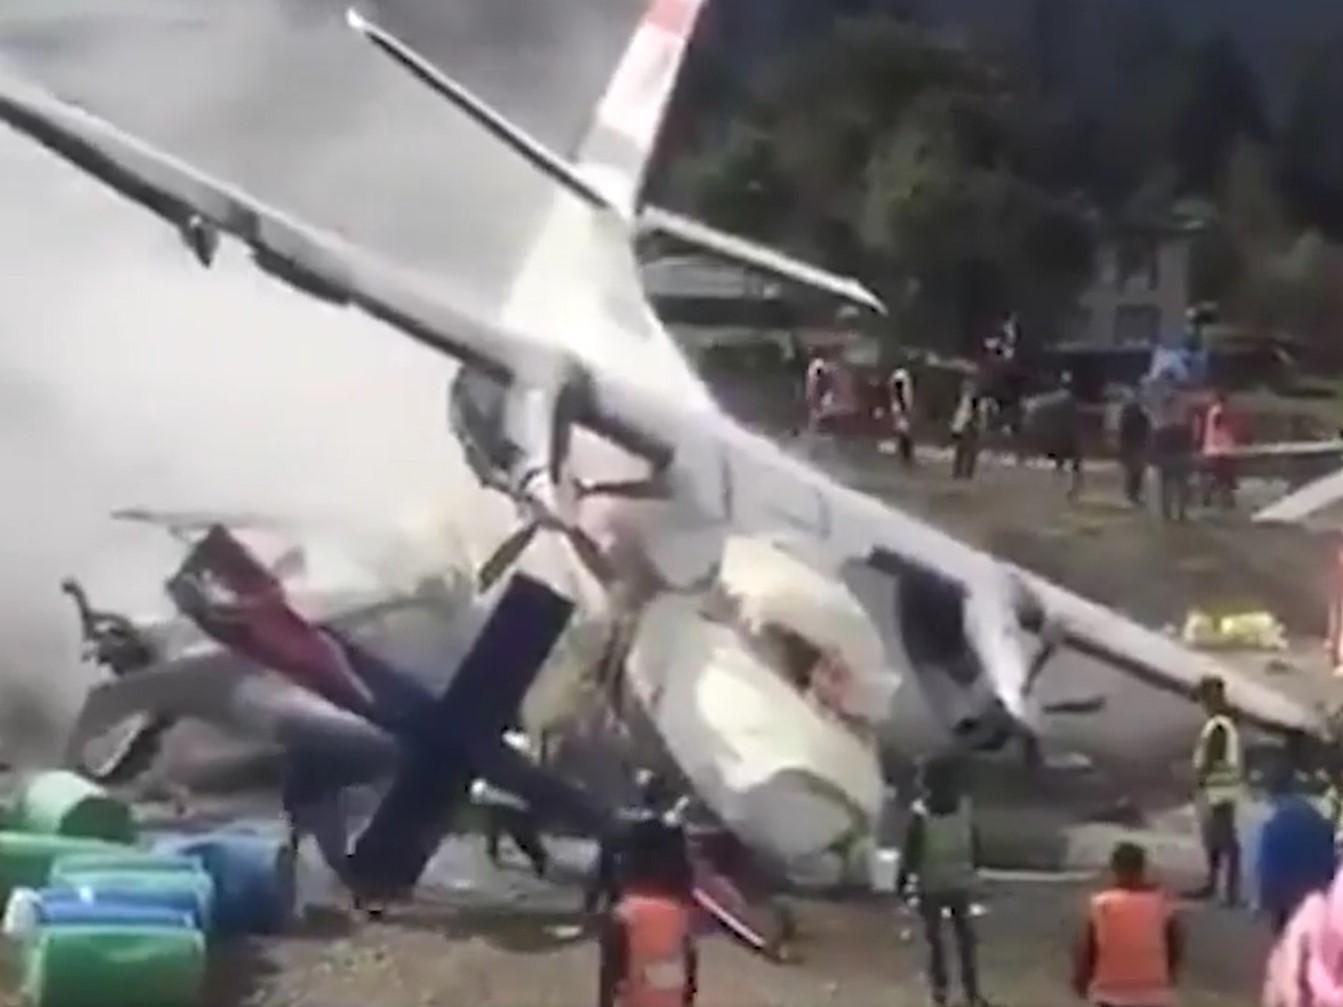 plane crash - latest news, breaking stories and comment - The